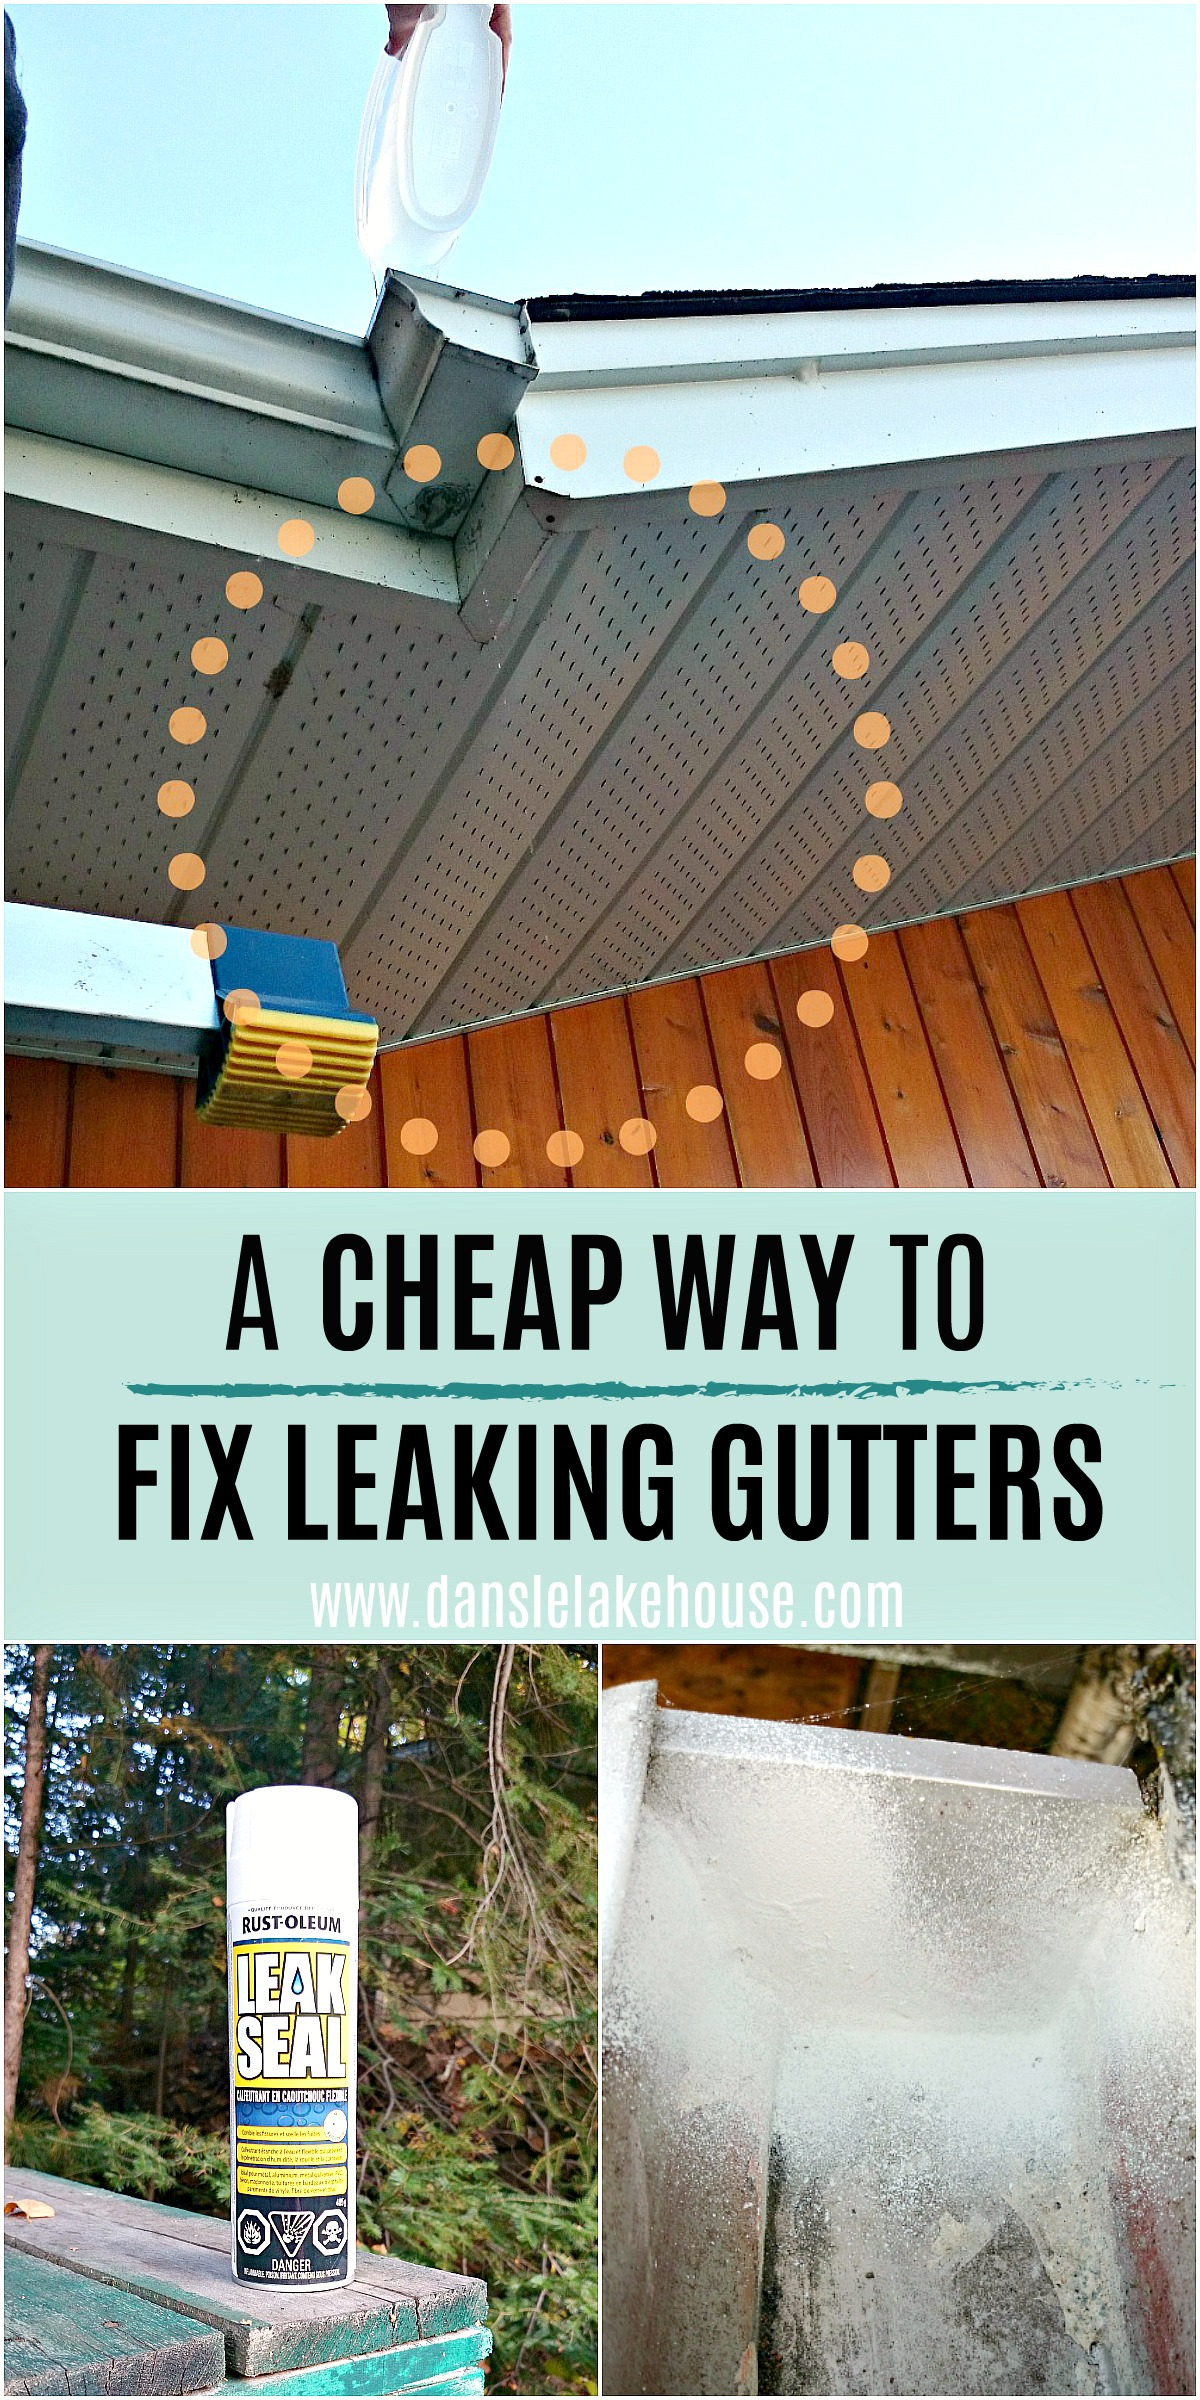 Cheap Way to Fix Leaking Gutters Plus Other Thrifty Home Projects